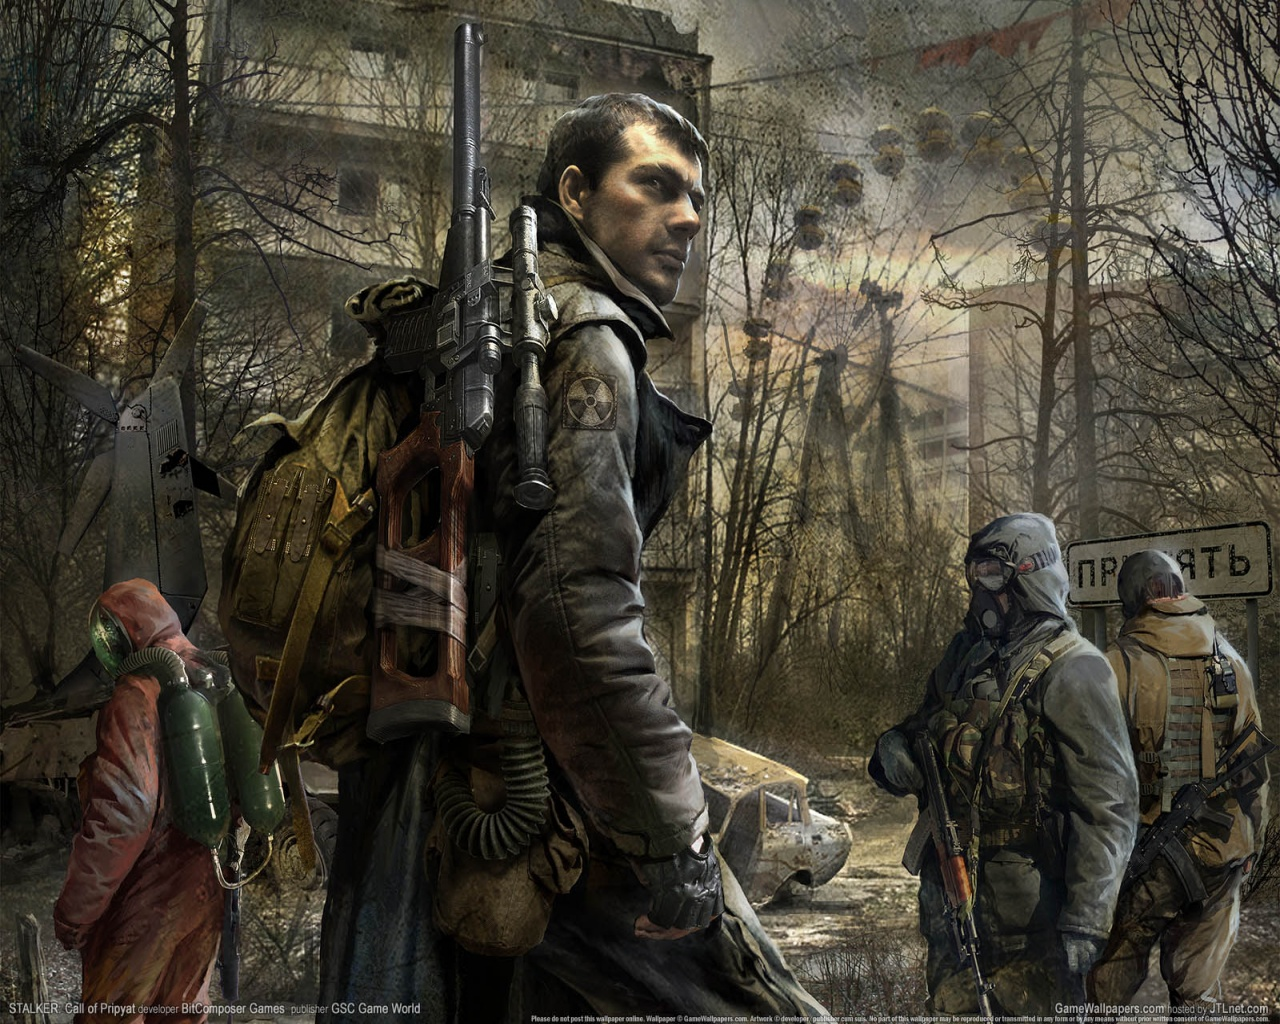 1280x1024 Stalker: Call of Pripyat desktop PC and Mac wallpaper